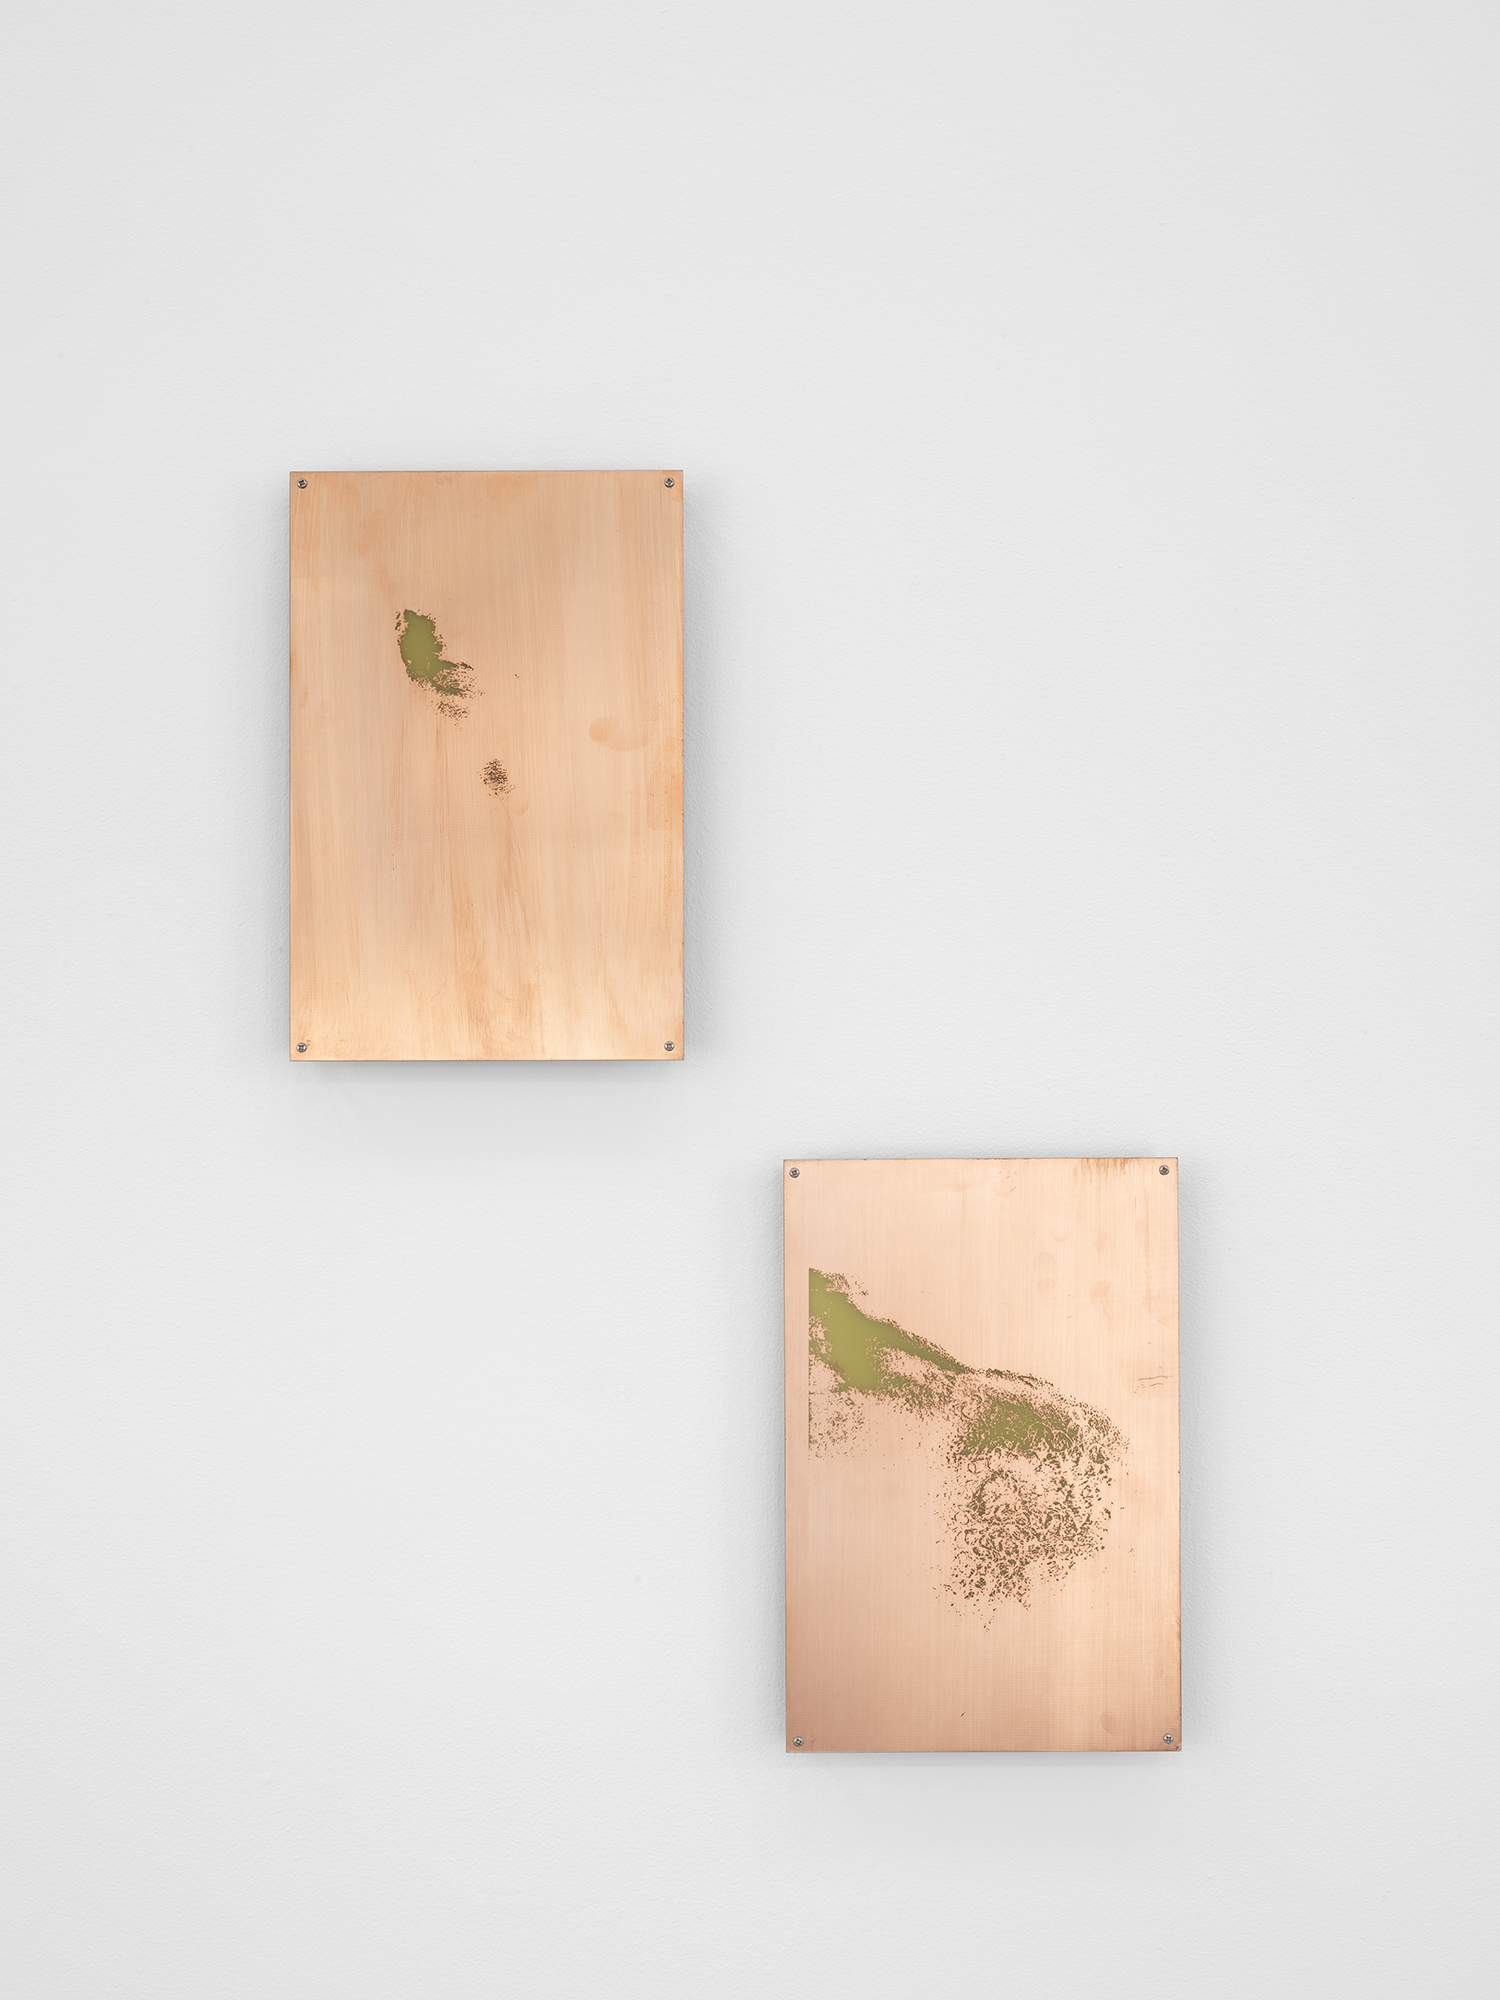 Body Print (Laryngeal Prominence, Sternum and Attending Soft Tissues)    2017   Etched copper-clad FR-4 glass-reinforced epoxy laminate board  12 x 8 inches each, 2 parts   Open Source, 2017